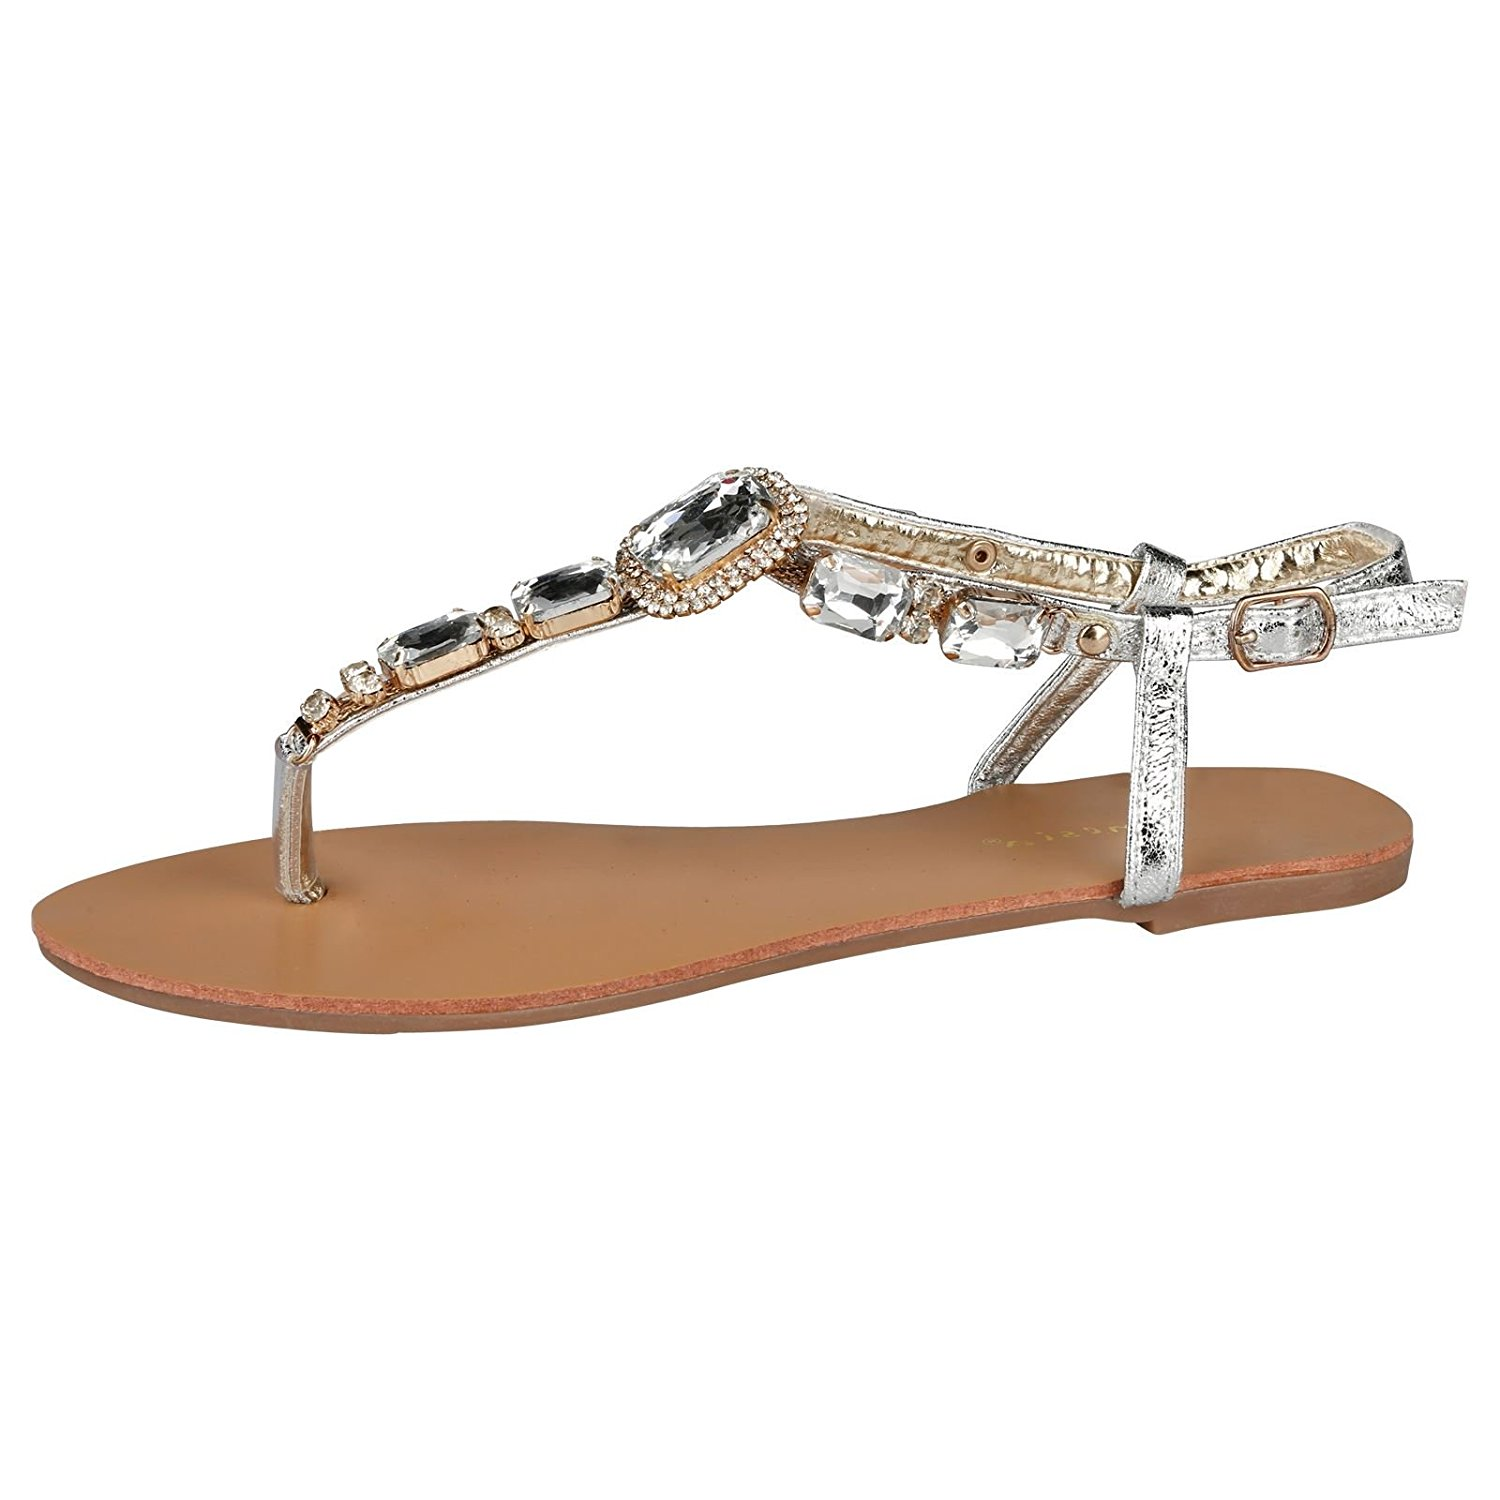 0c9535329c1ae Happy Feet Snooki s Zebra Print Hooded Thong Sandals. 9.99. null. Get  Quotations · Feet First Fashion Zola Womens Flat Toe Strap Jewelled Thong  Sandals